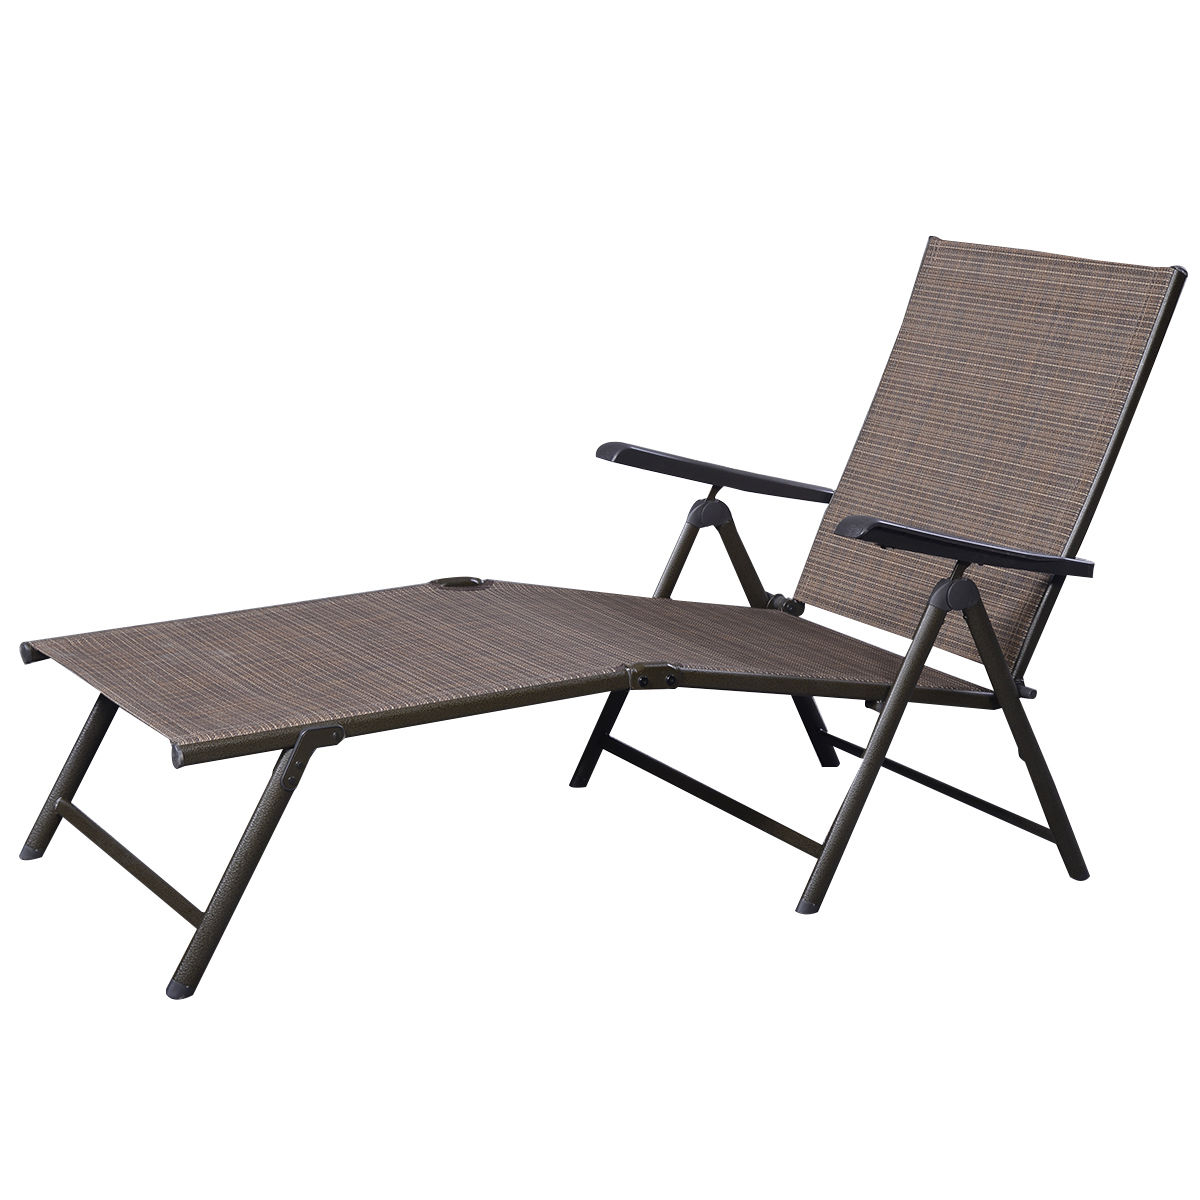 Outdoor Adjustable Chaise Lounge Chair Inside Well Known Reclining Sling Chaise Lounges (View 12 of 25)